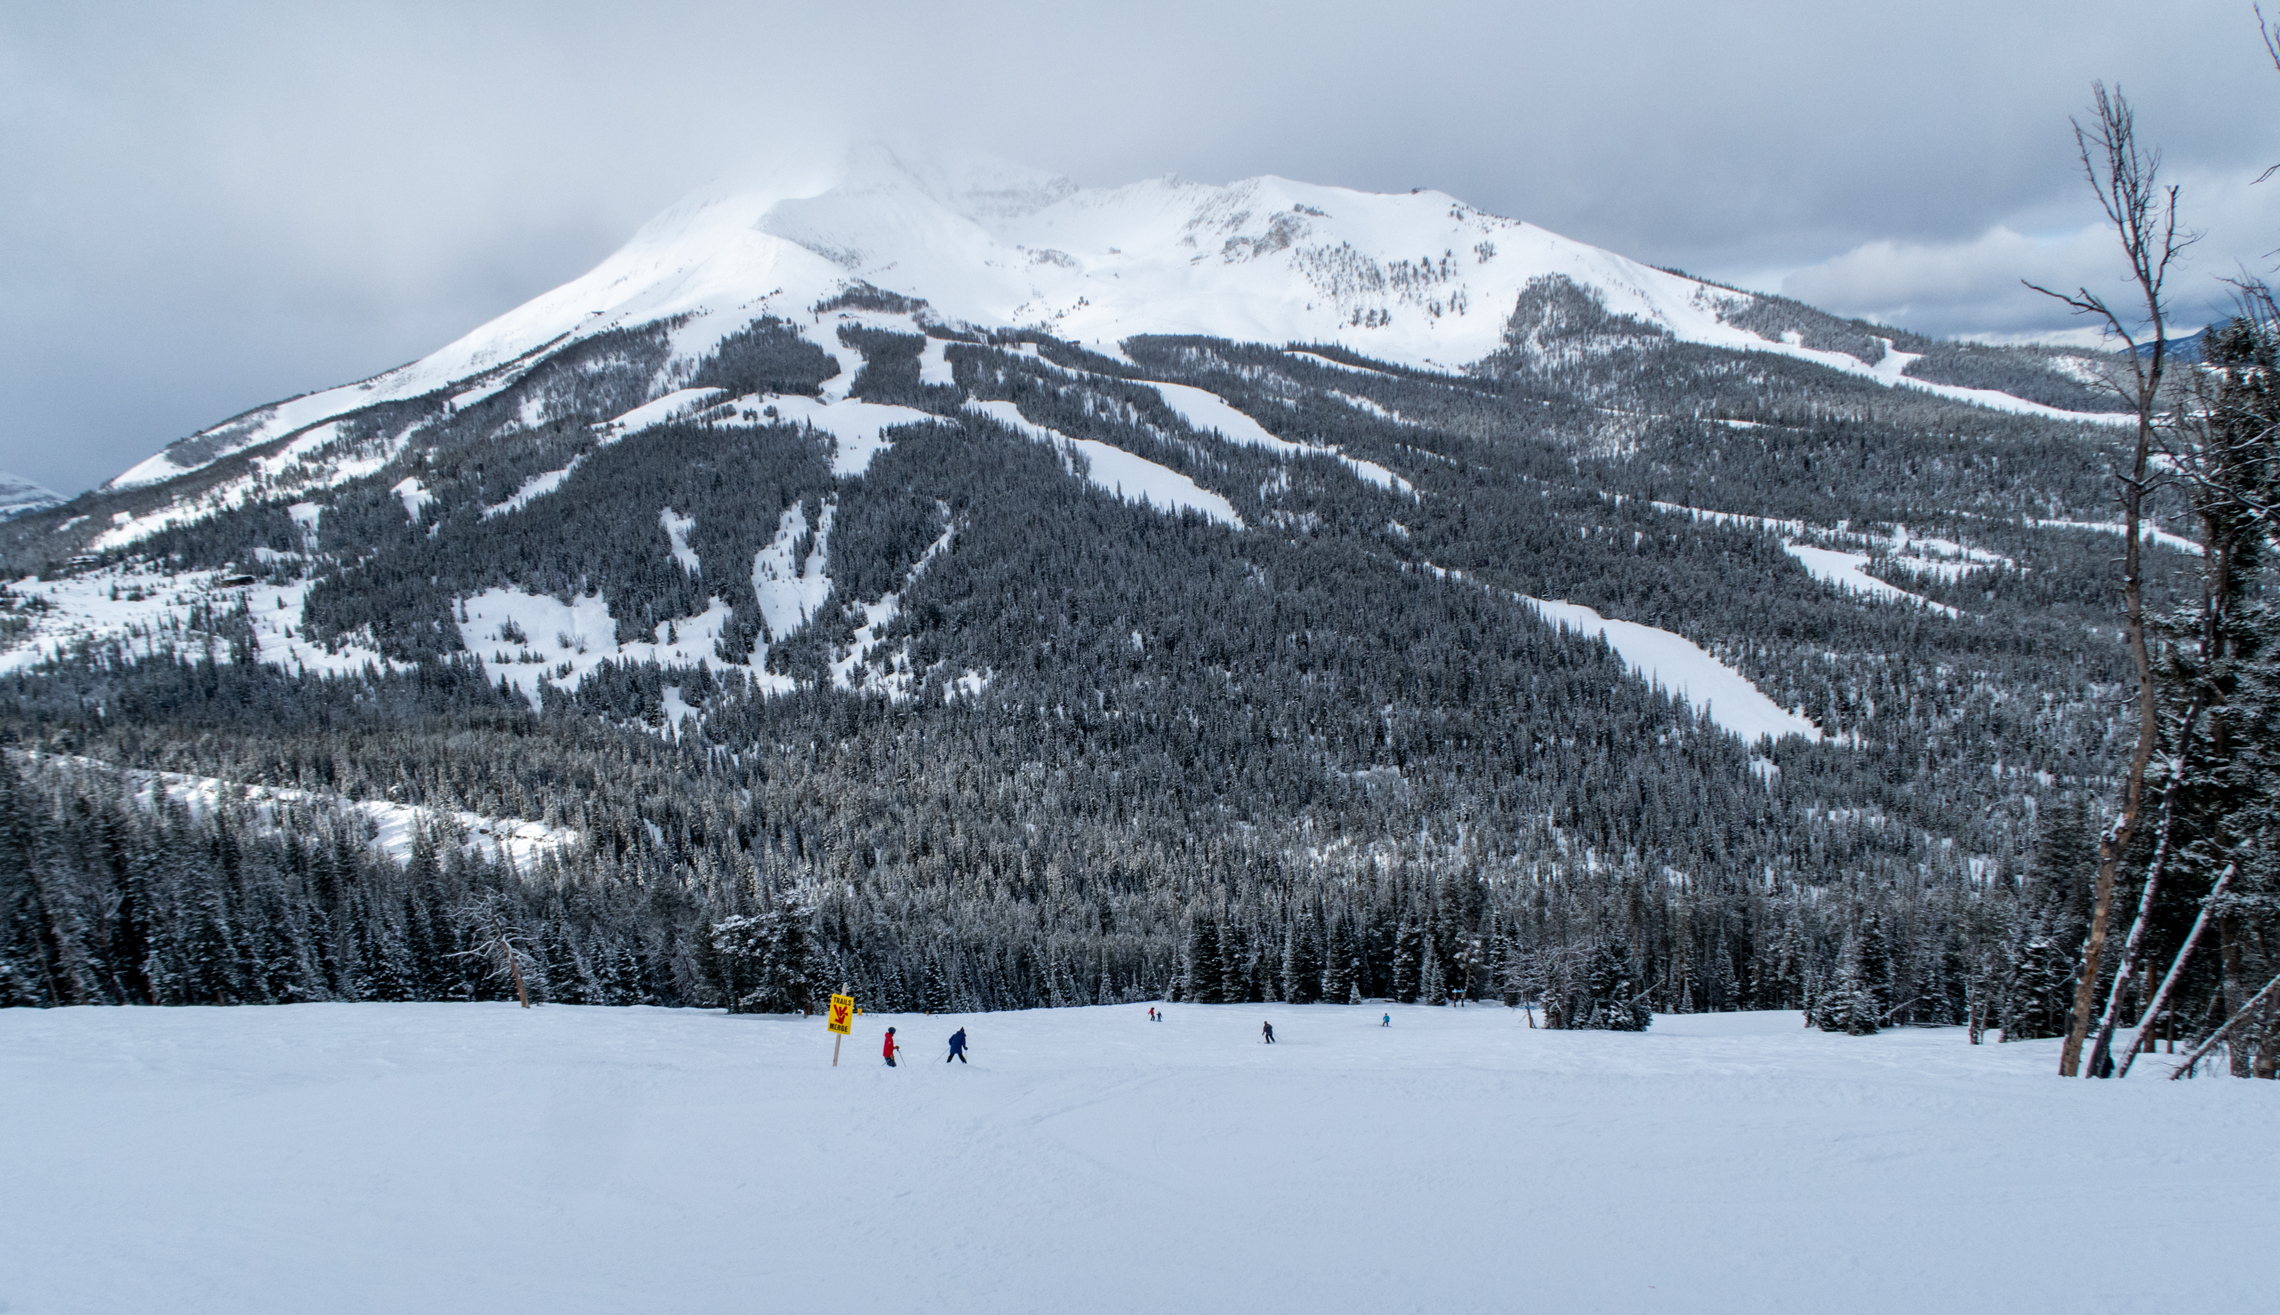 Mountain with ski trails running down the side